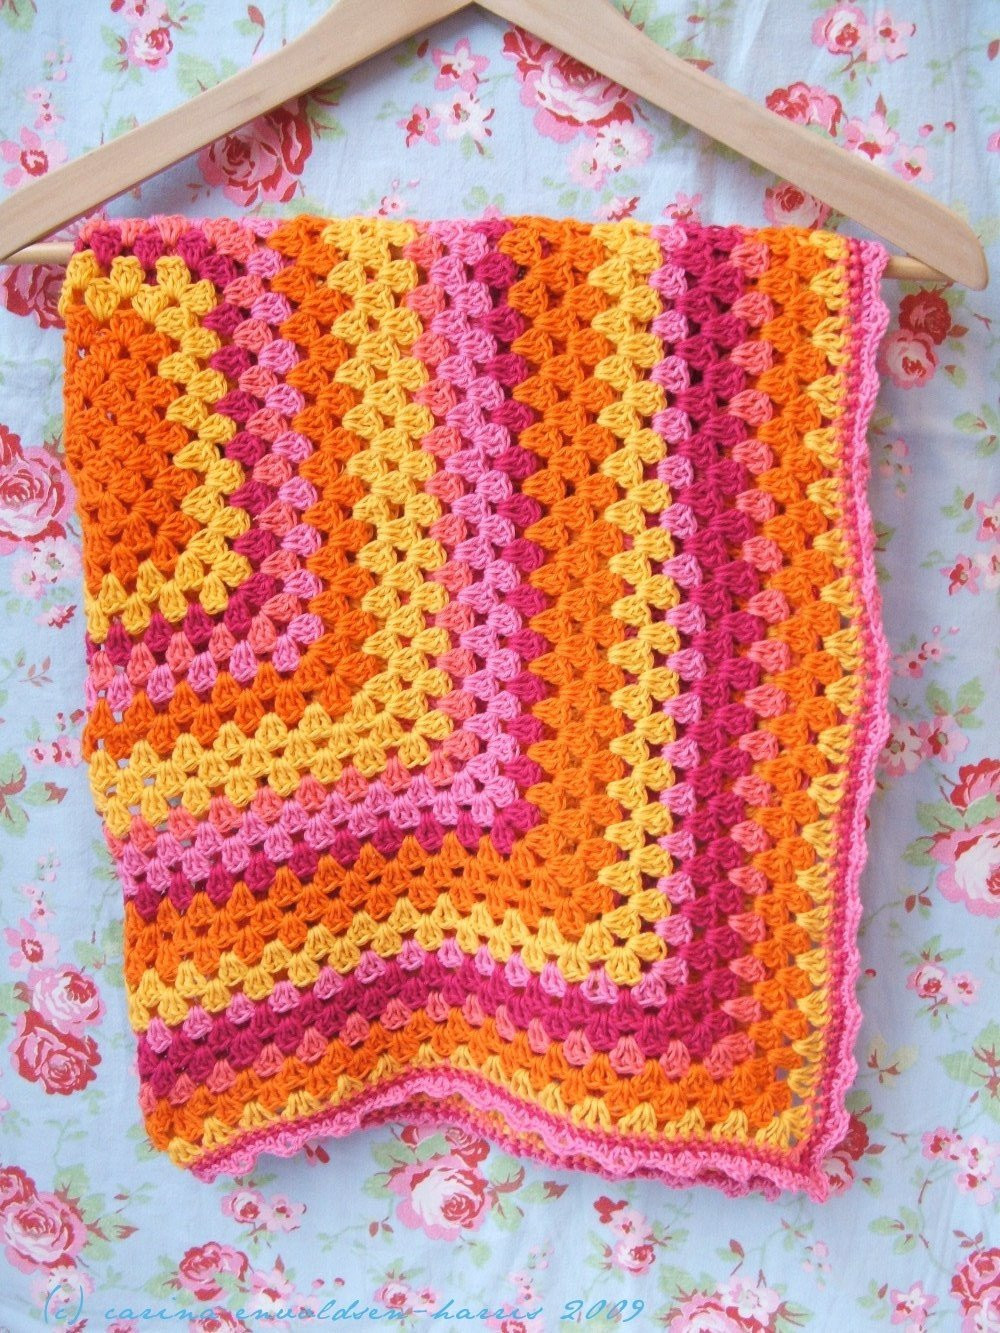 Lovely Simply Crochet Pattern for Baby Blanket Patterns Single Stitch Crochet Blanket Of Marvelous 48 Images Single Stitch Crochet Blanket